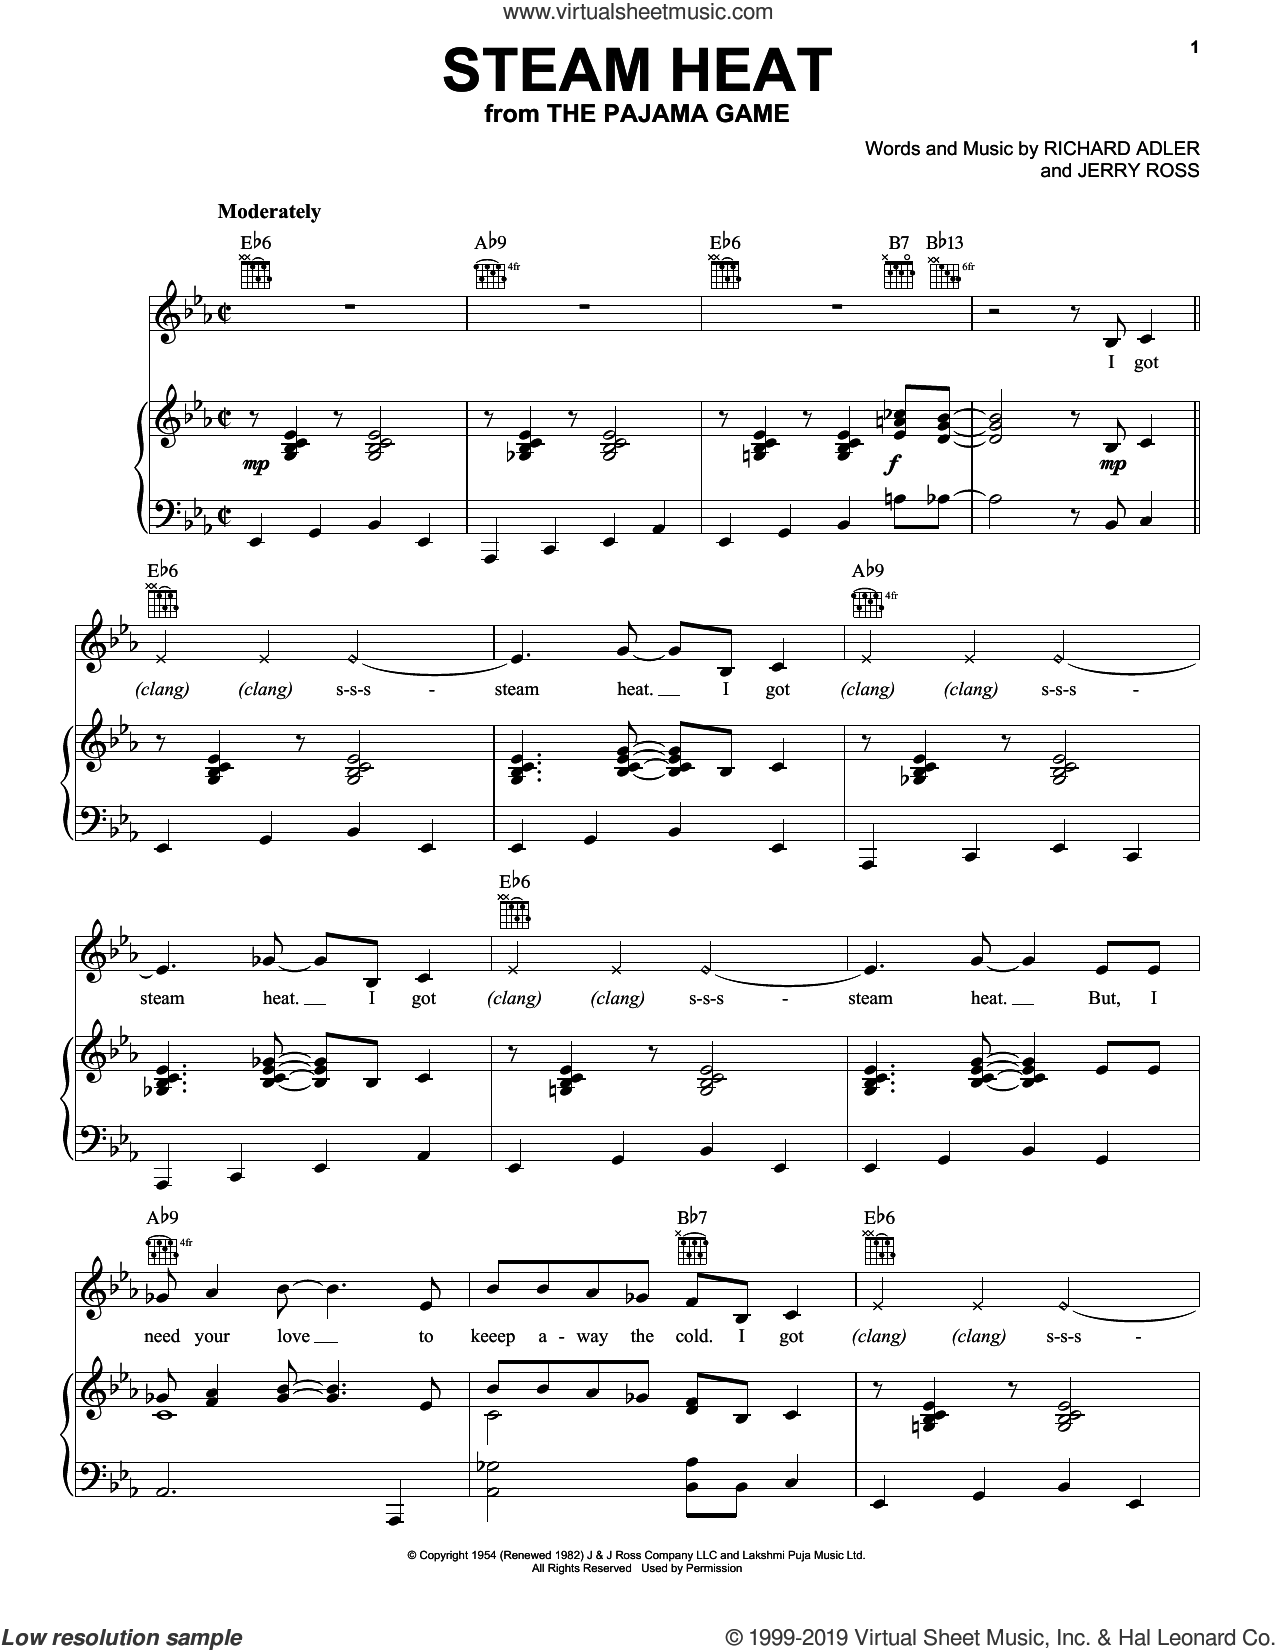 Steam Heat sheet music for voice, piano or guitar by Adler & Ross, Jerry Ross and Richard Adler, intermediate skill level